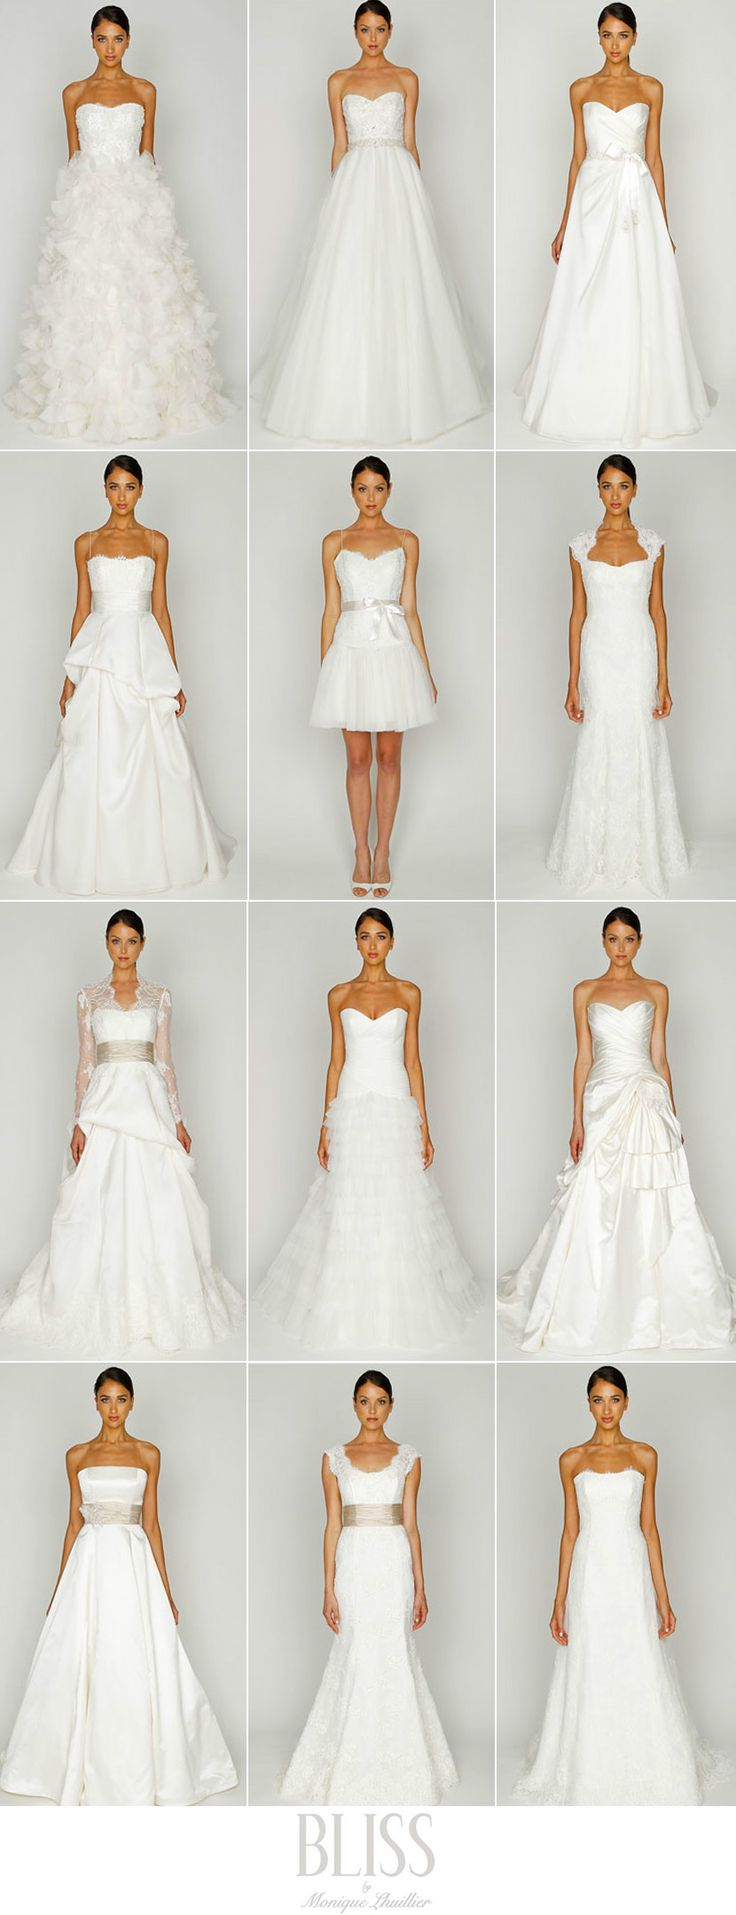 wedding dress shapes - good guide to look at before you go hunting for your wedding dress